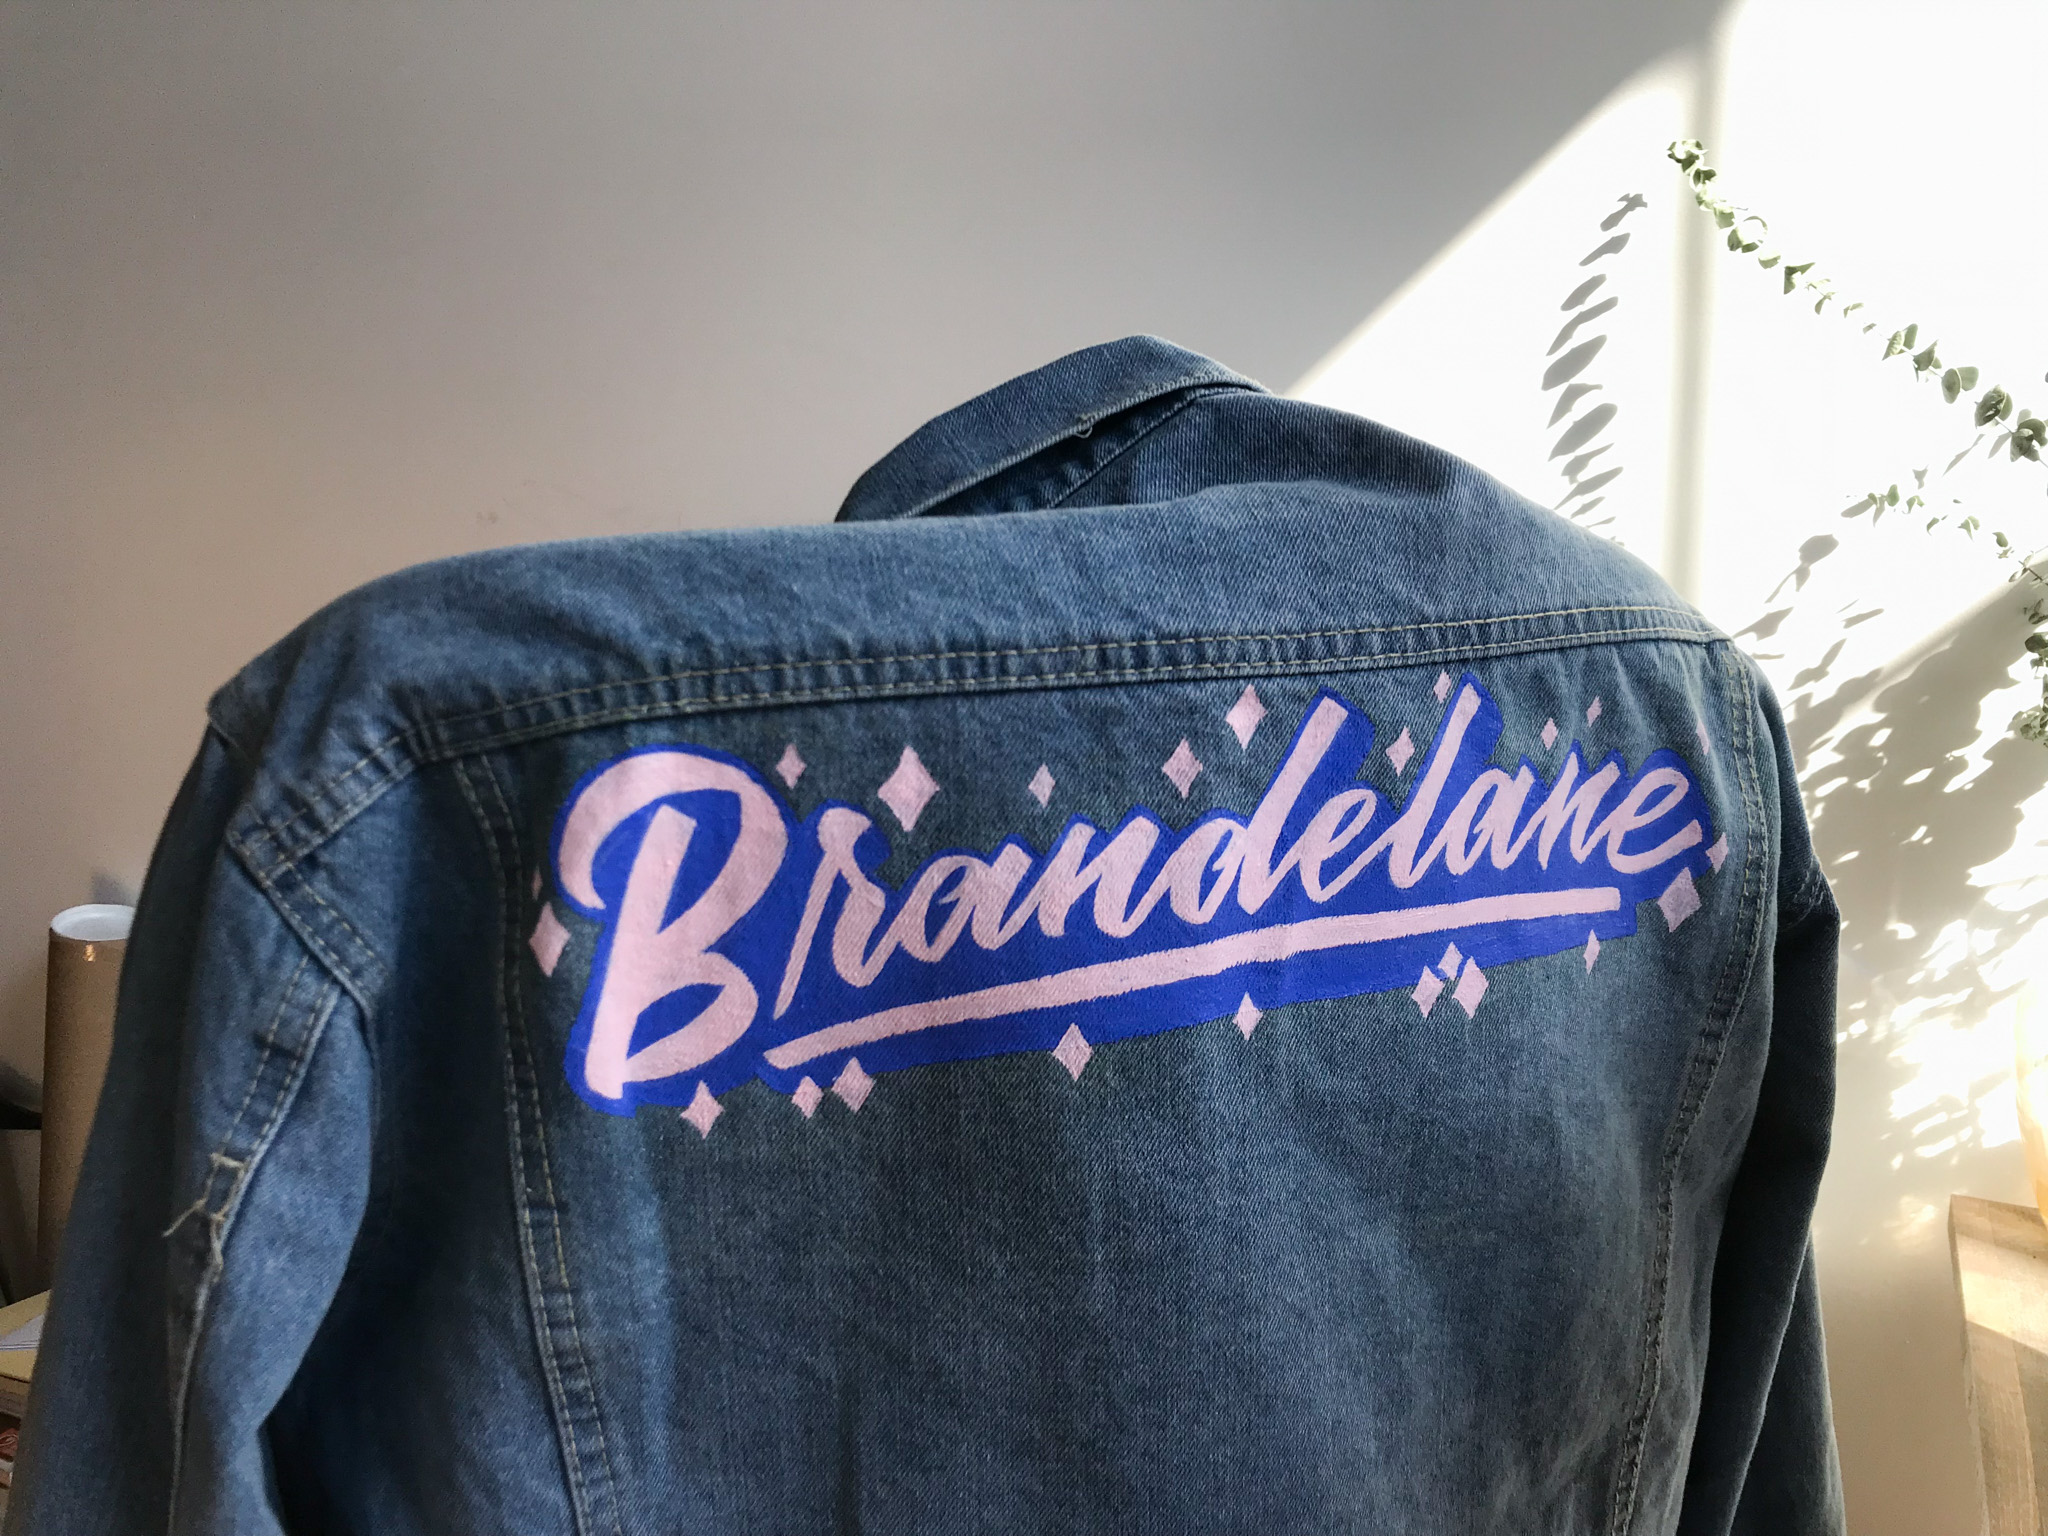 Hand painted custom lettering on denim jacket for Brandelane by Hillery Powers